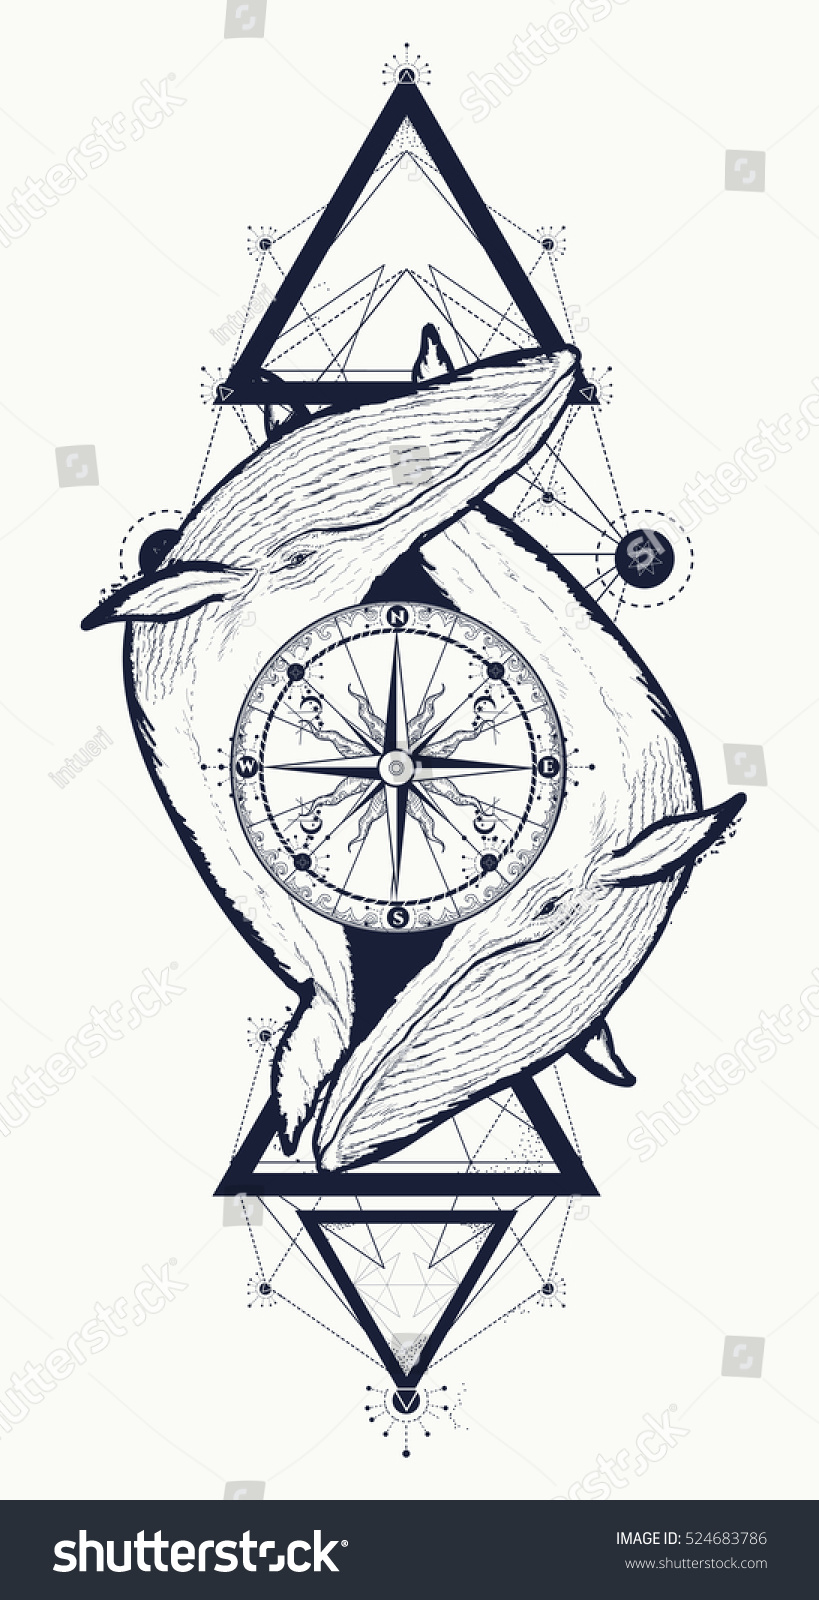 Two Whales Rose Compass Tattoo Geometric Animals Wildlife Signs